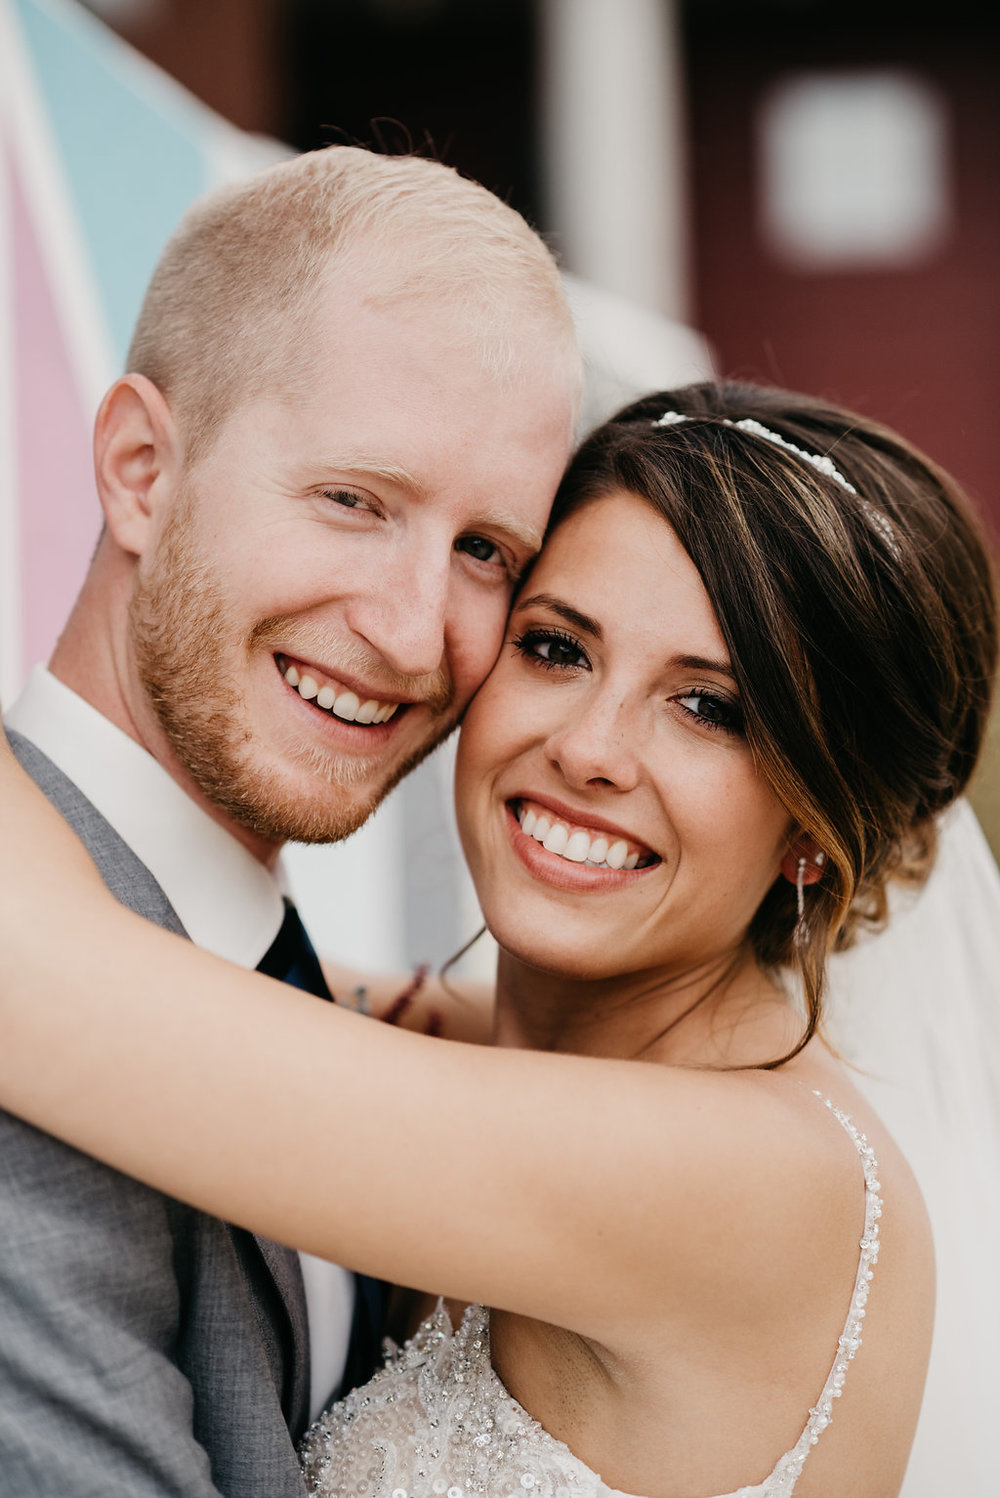 Mpls weddng photography-414.jpg